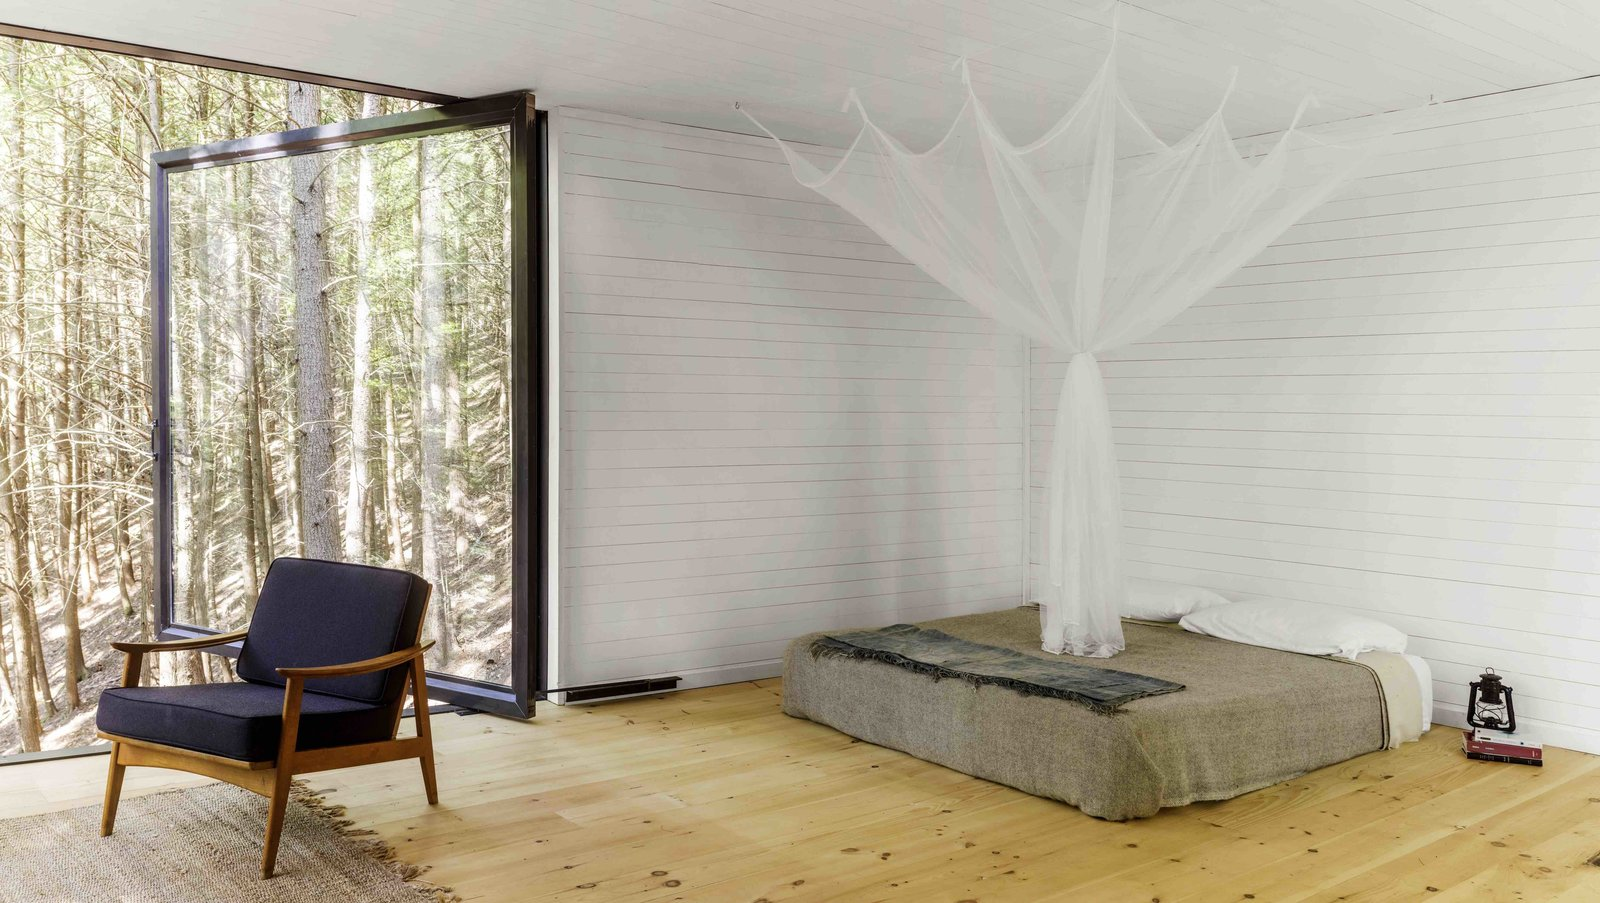 Bedroom, Bed, Chair, and Light Hardwood Floor  Best Photos from A Dramatic Tree House by Budget-Conscious DIY Builders